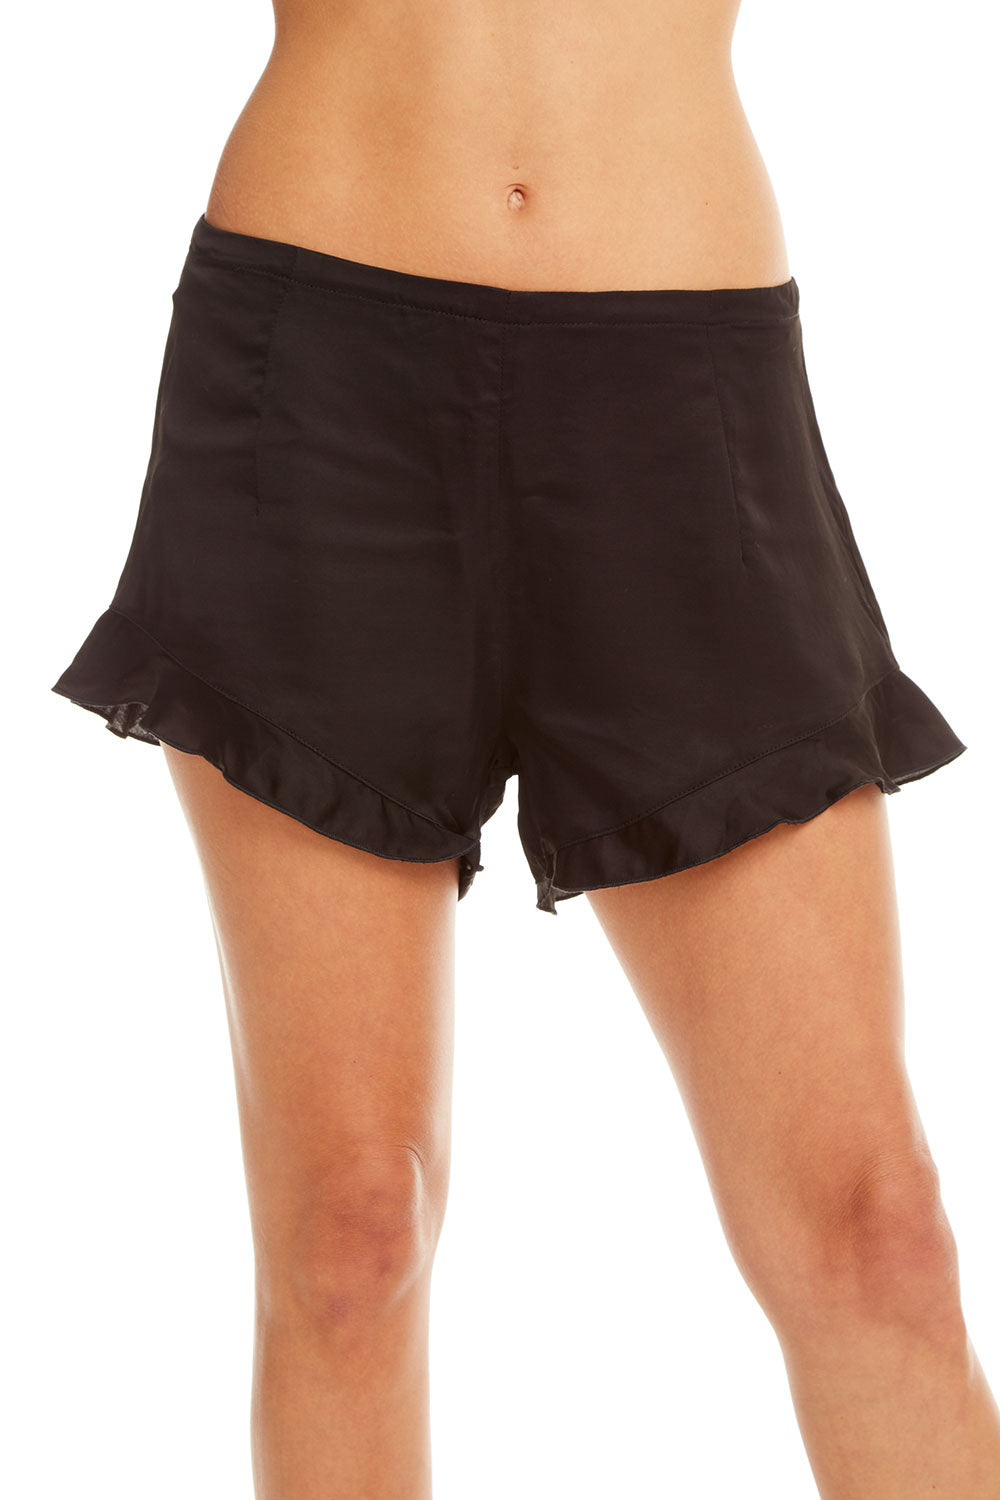 Silky Ruffle Hem Shorts, WOMENS, chaserbrand.com,chaser clothing,chaser apparel,chaser los angeles